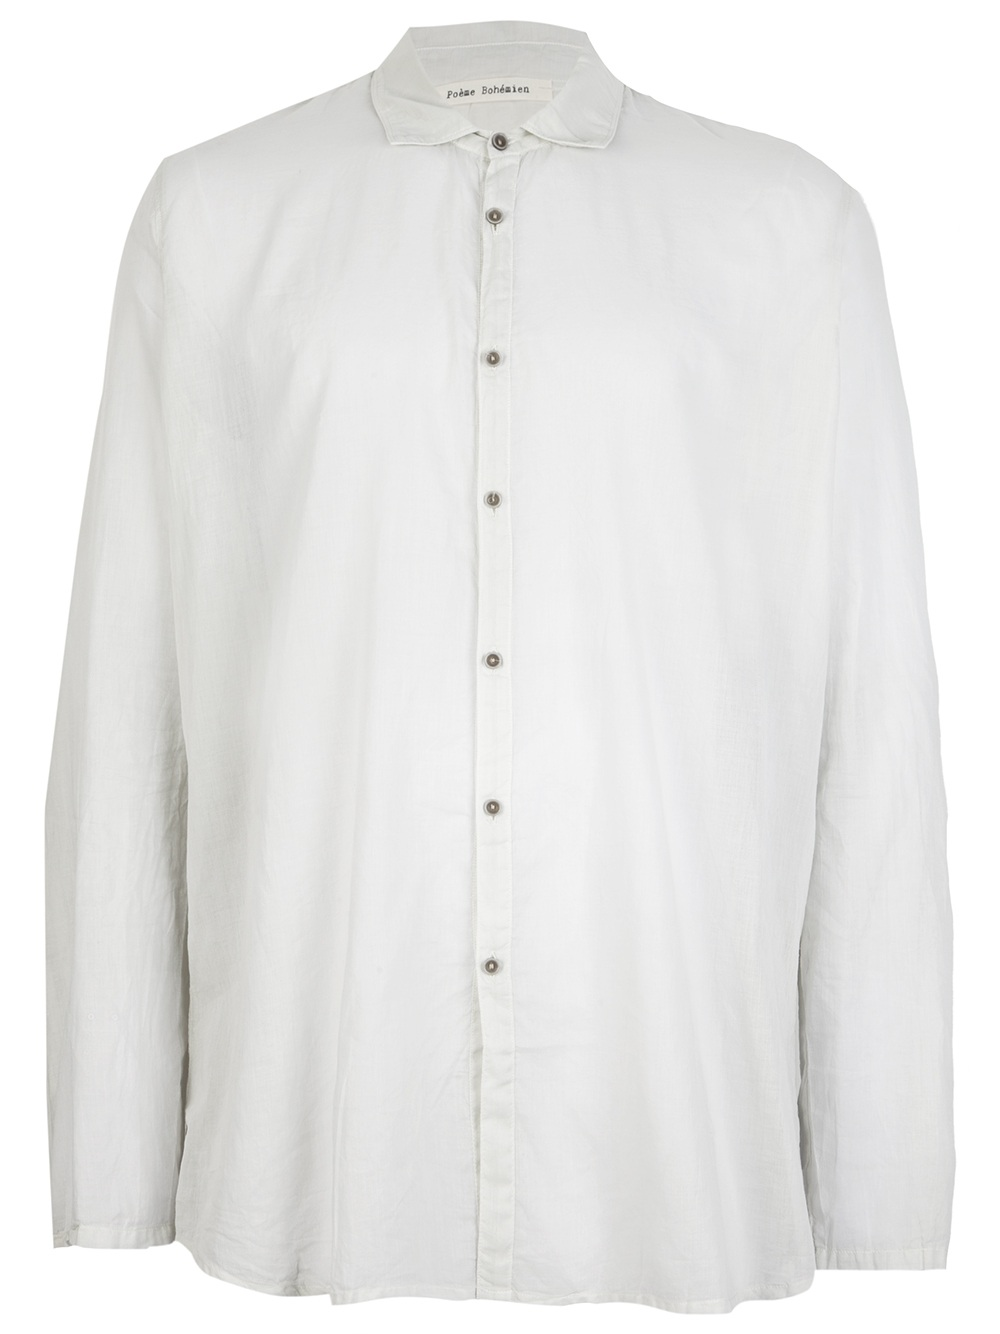 Poeme bohemien button down shirt in white for men lyst for White button down shirt mens